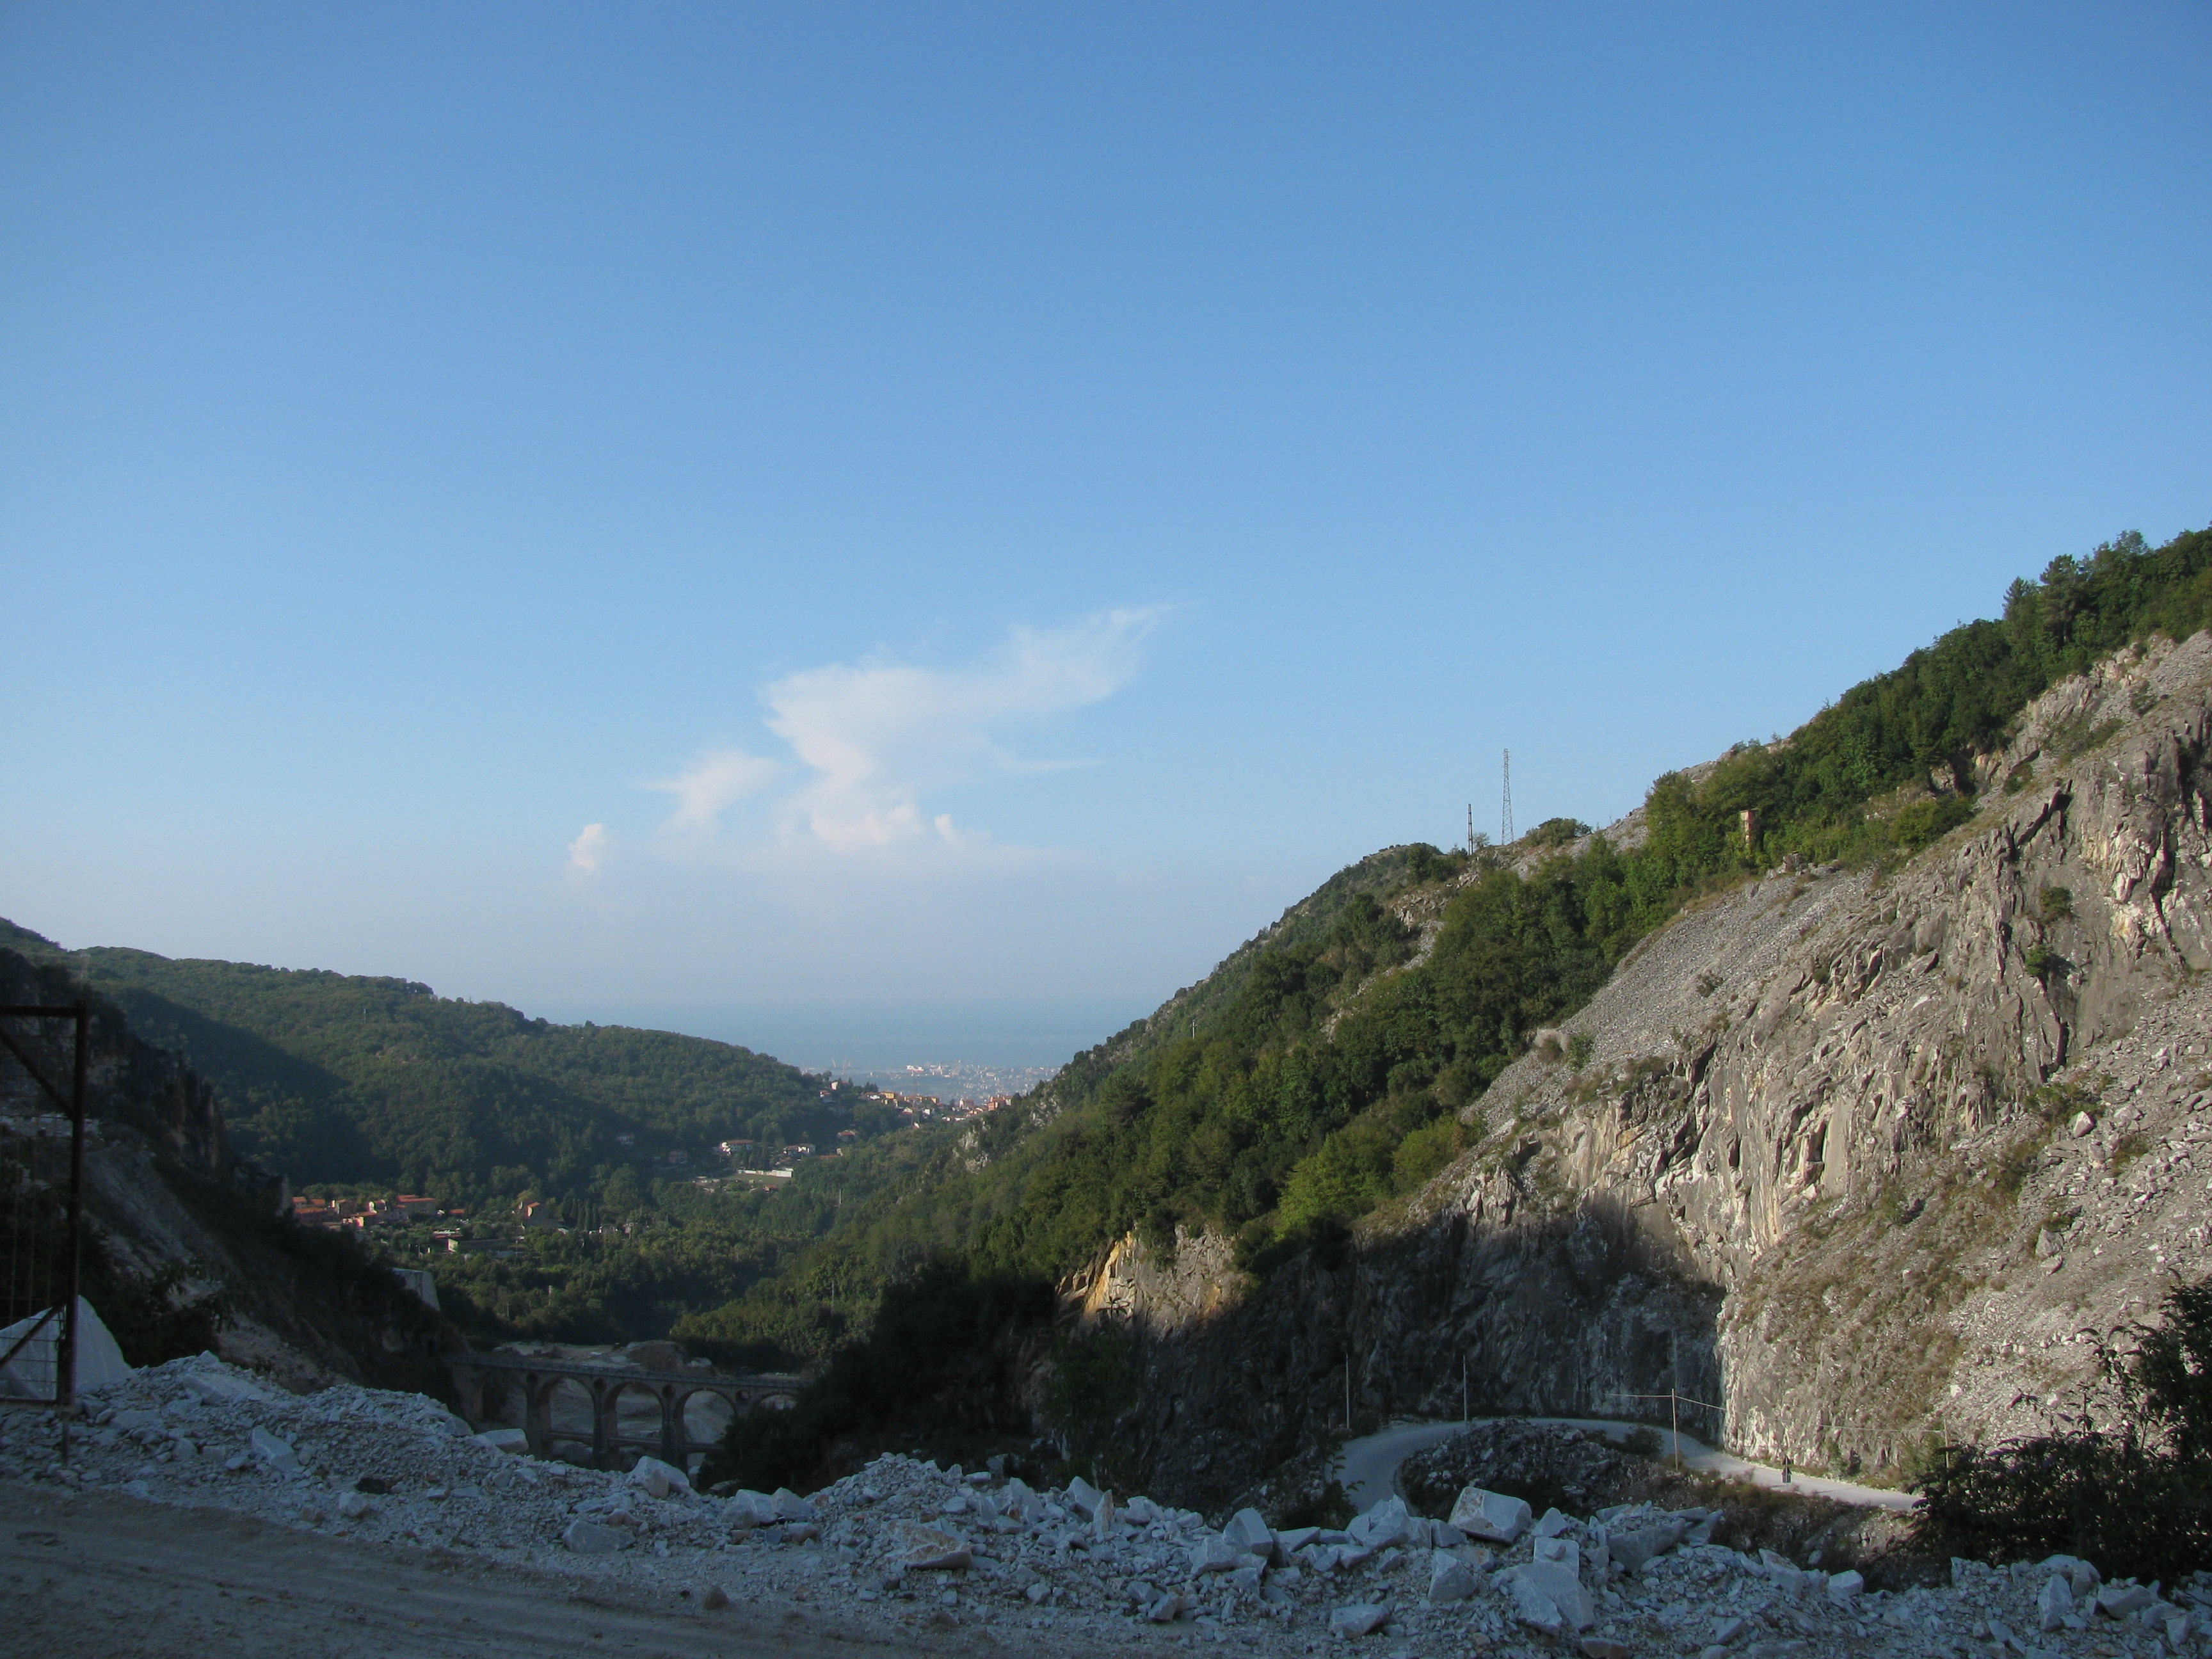 View west to the town of Carrara and beyond to the seaside town of Marina di Carrara